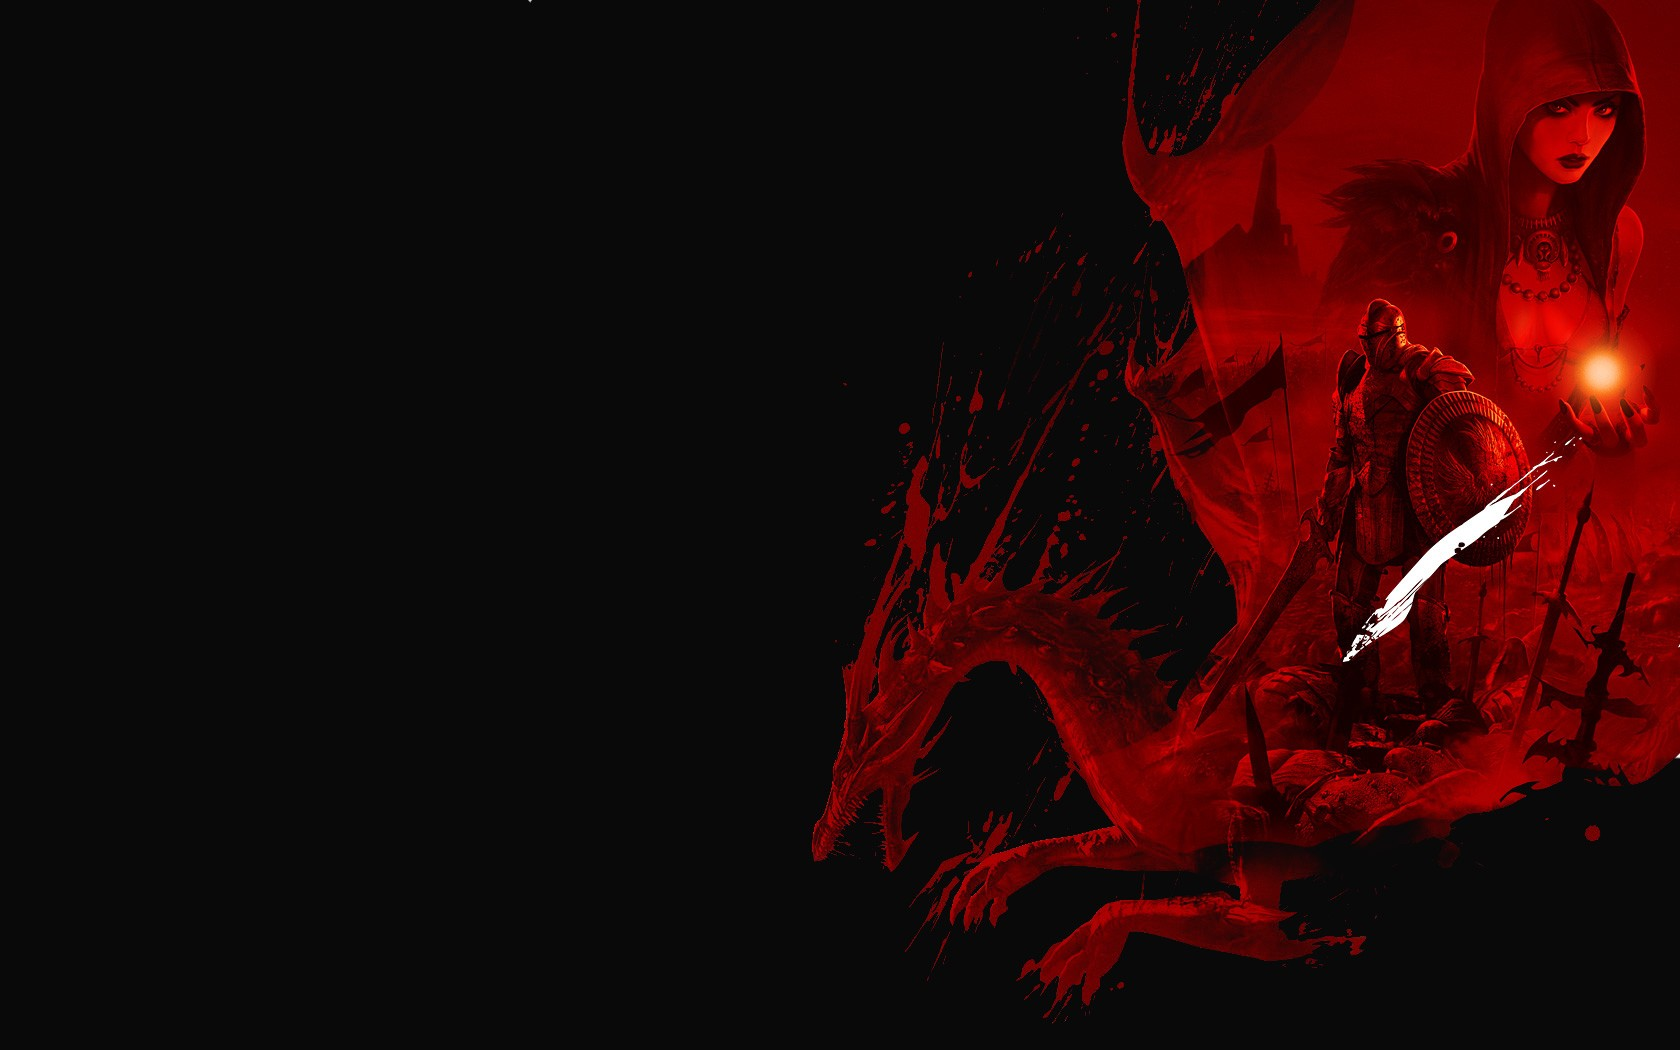 Dragon red background backgrounds for powerpoint templates | Black ...